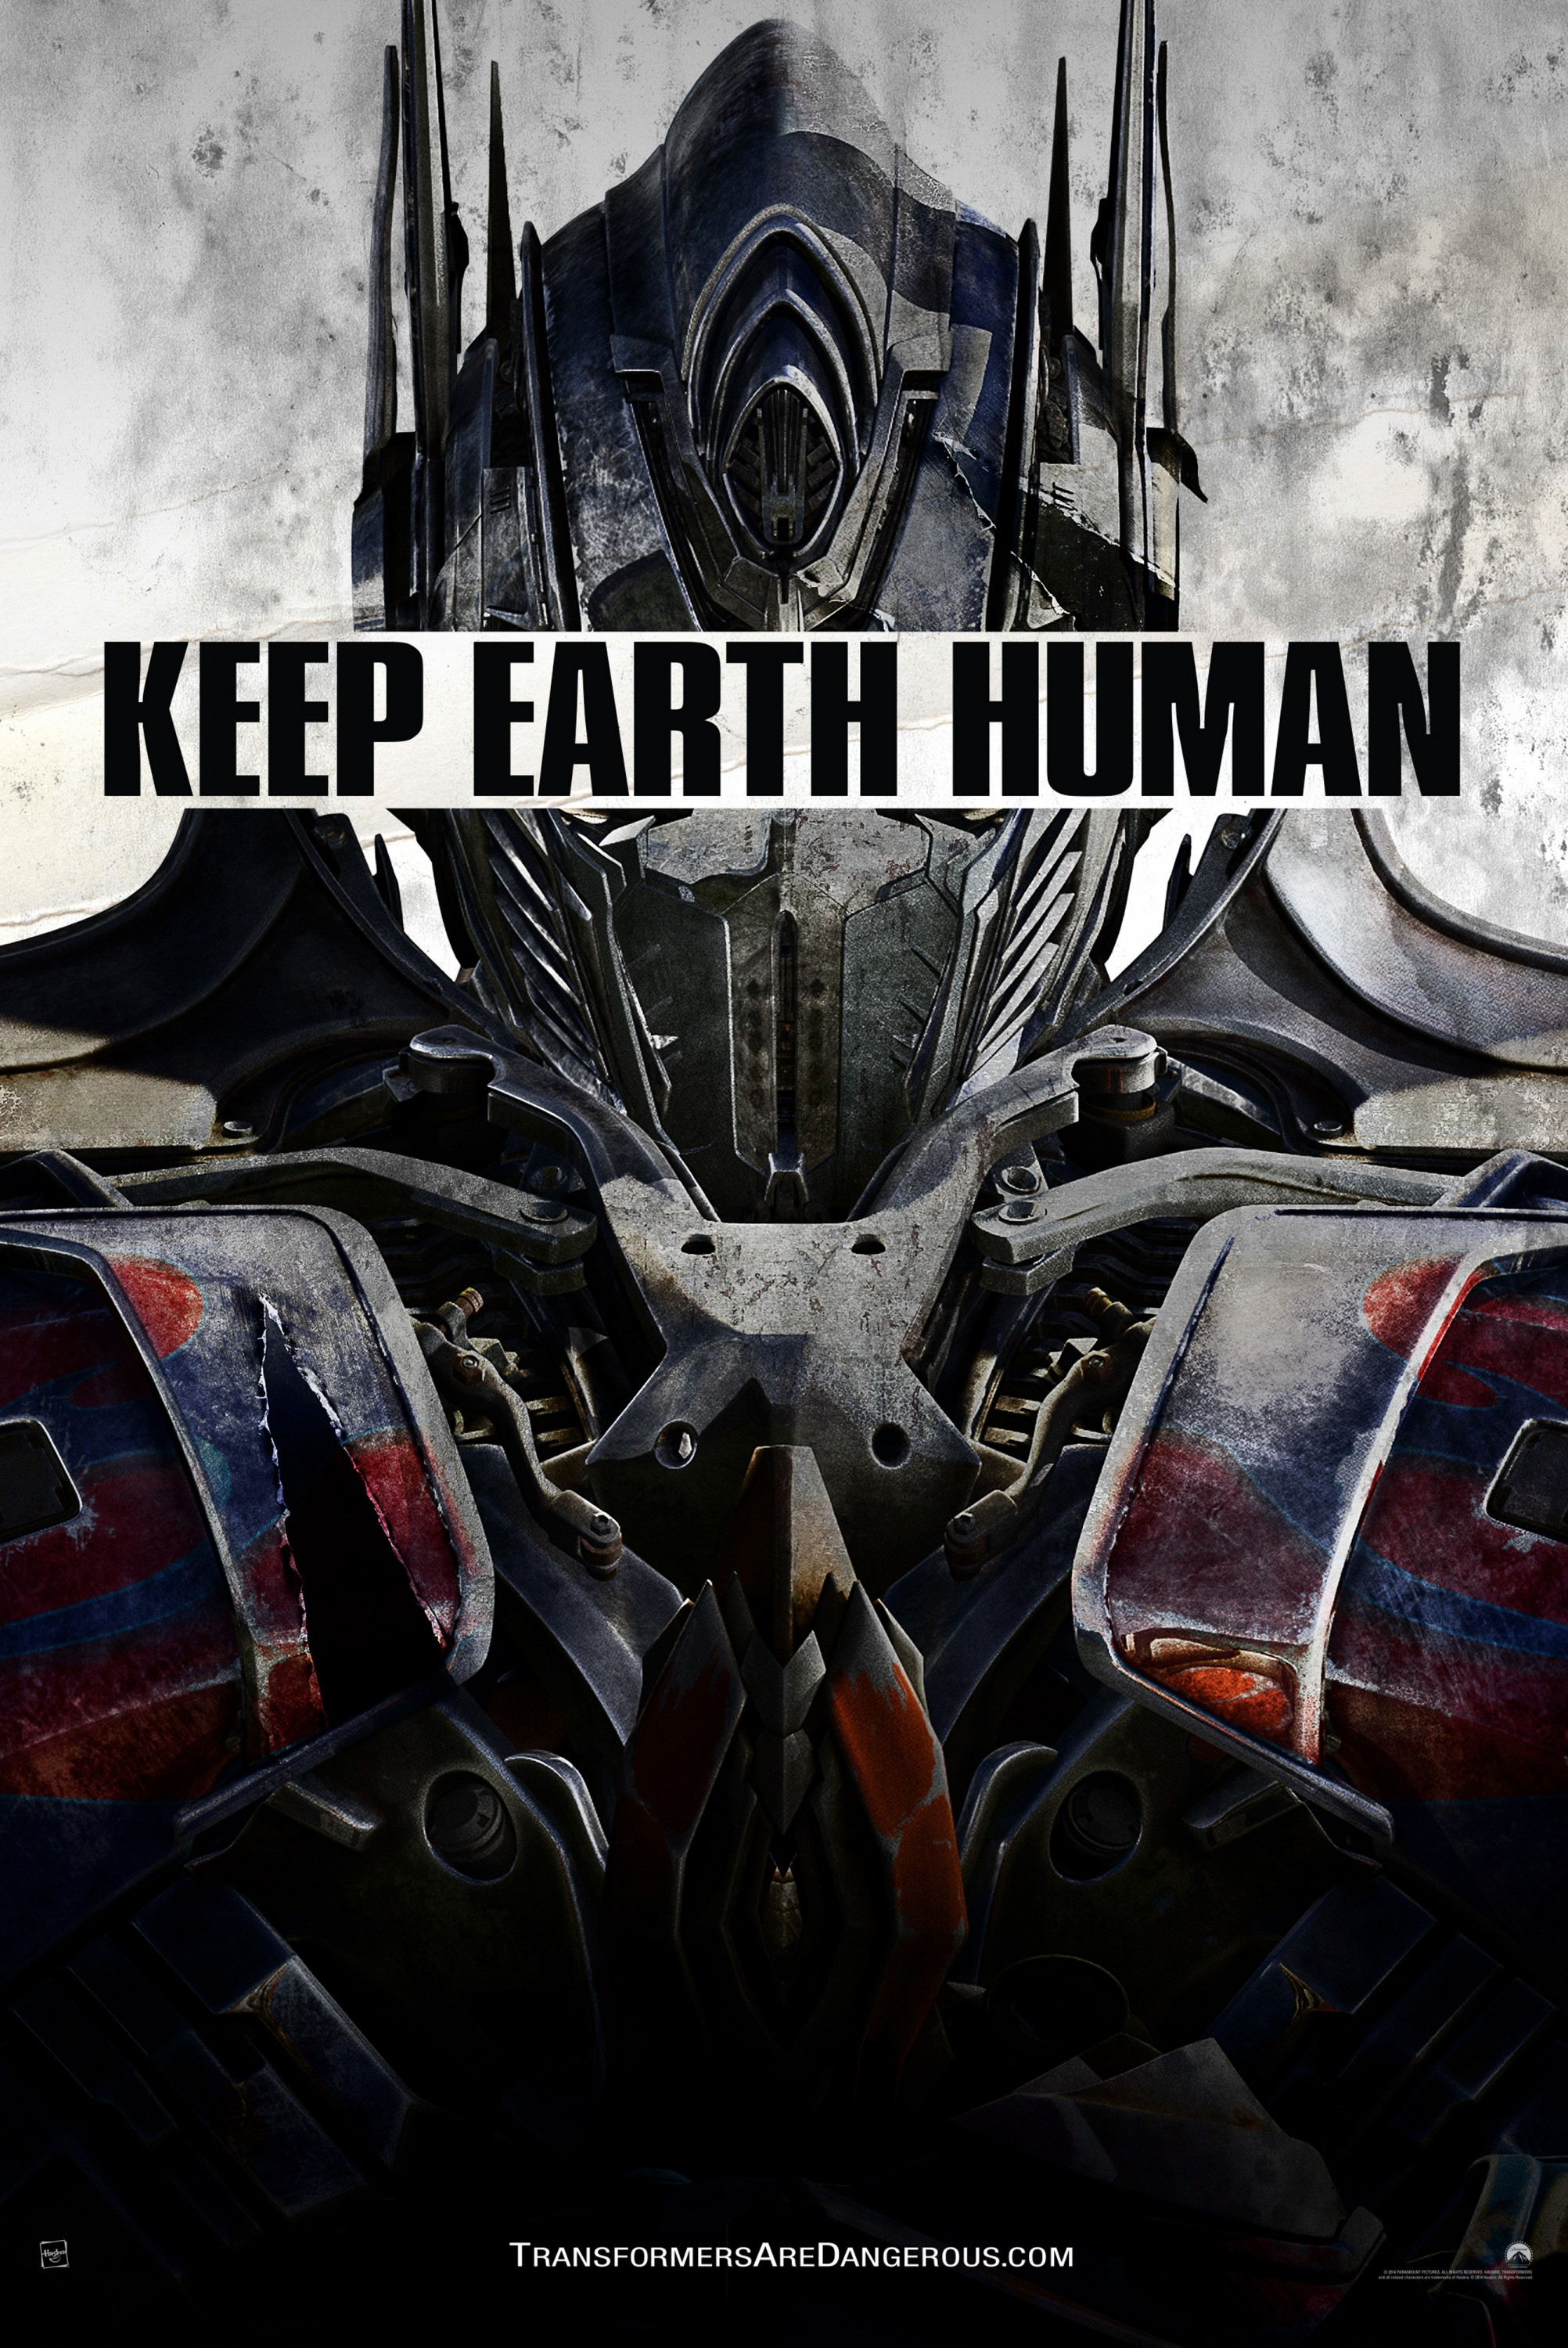 Transformers Age of Extinction-Official Poster Banner PROMO XXLG-26MAIO2014-01